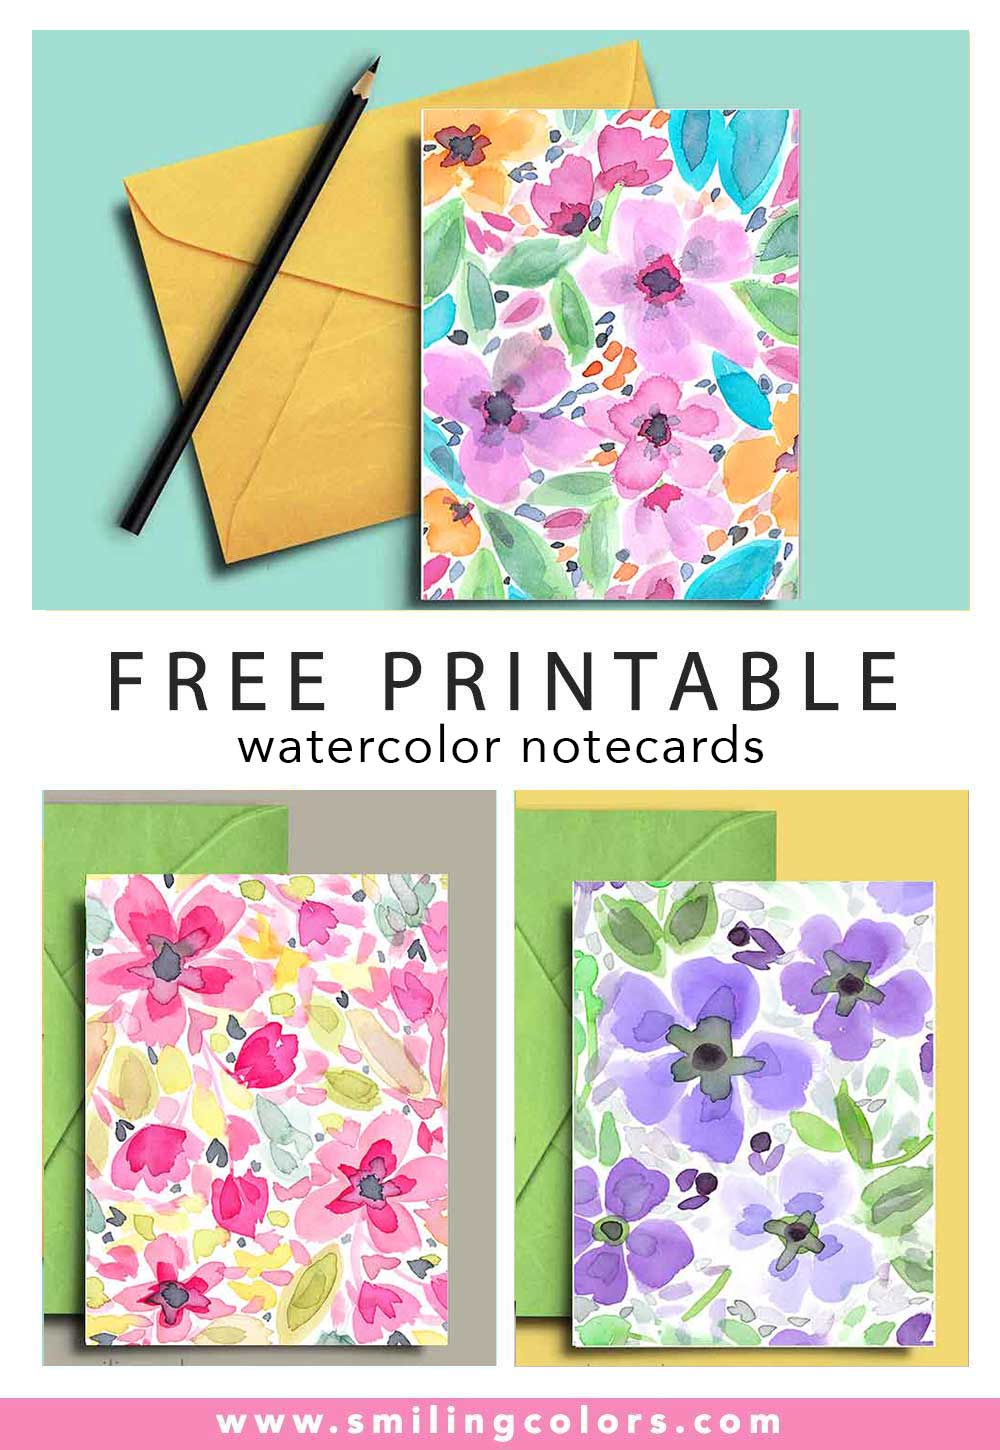 photo relating to Watercolor Printable named Cost-free Printable watercolor notecards that your self can obtain